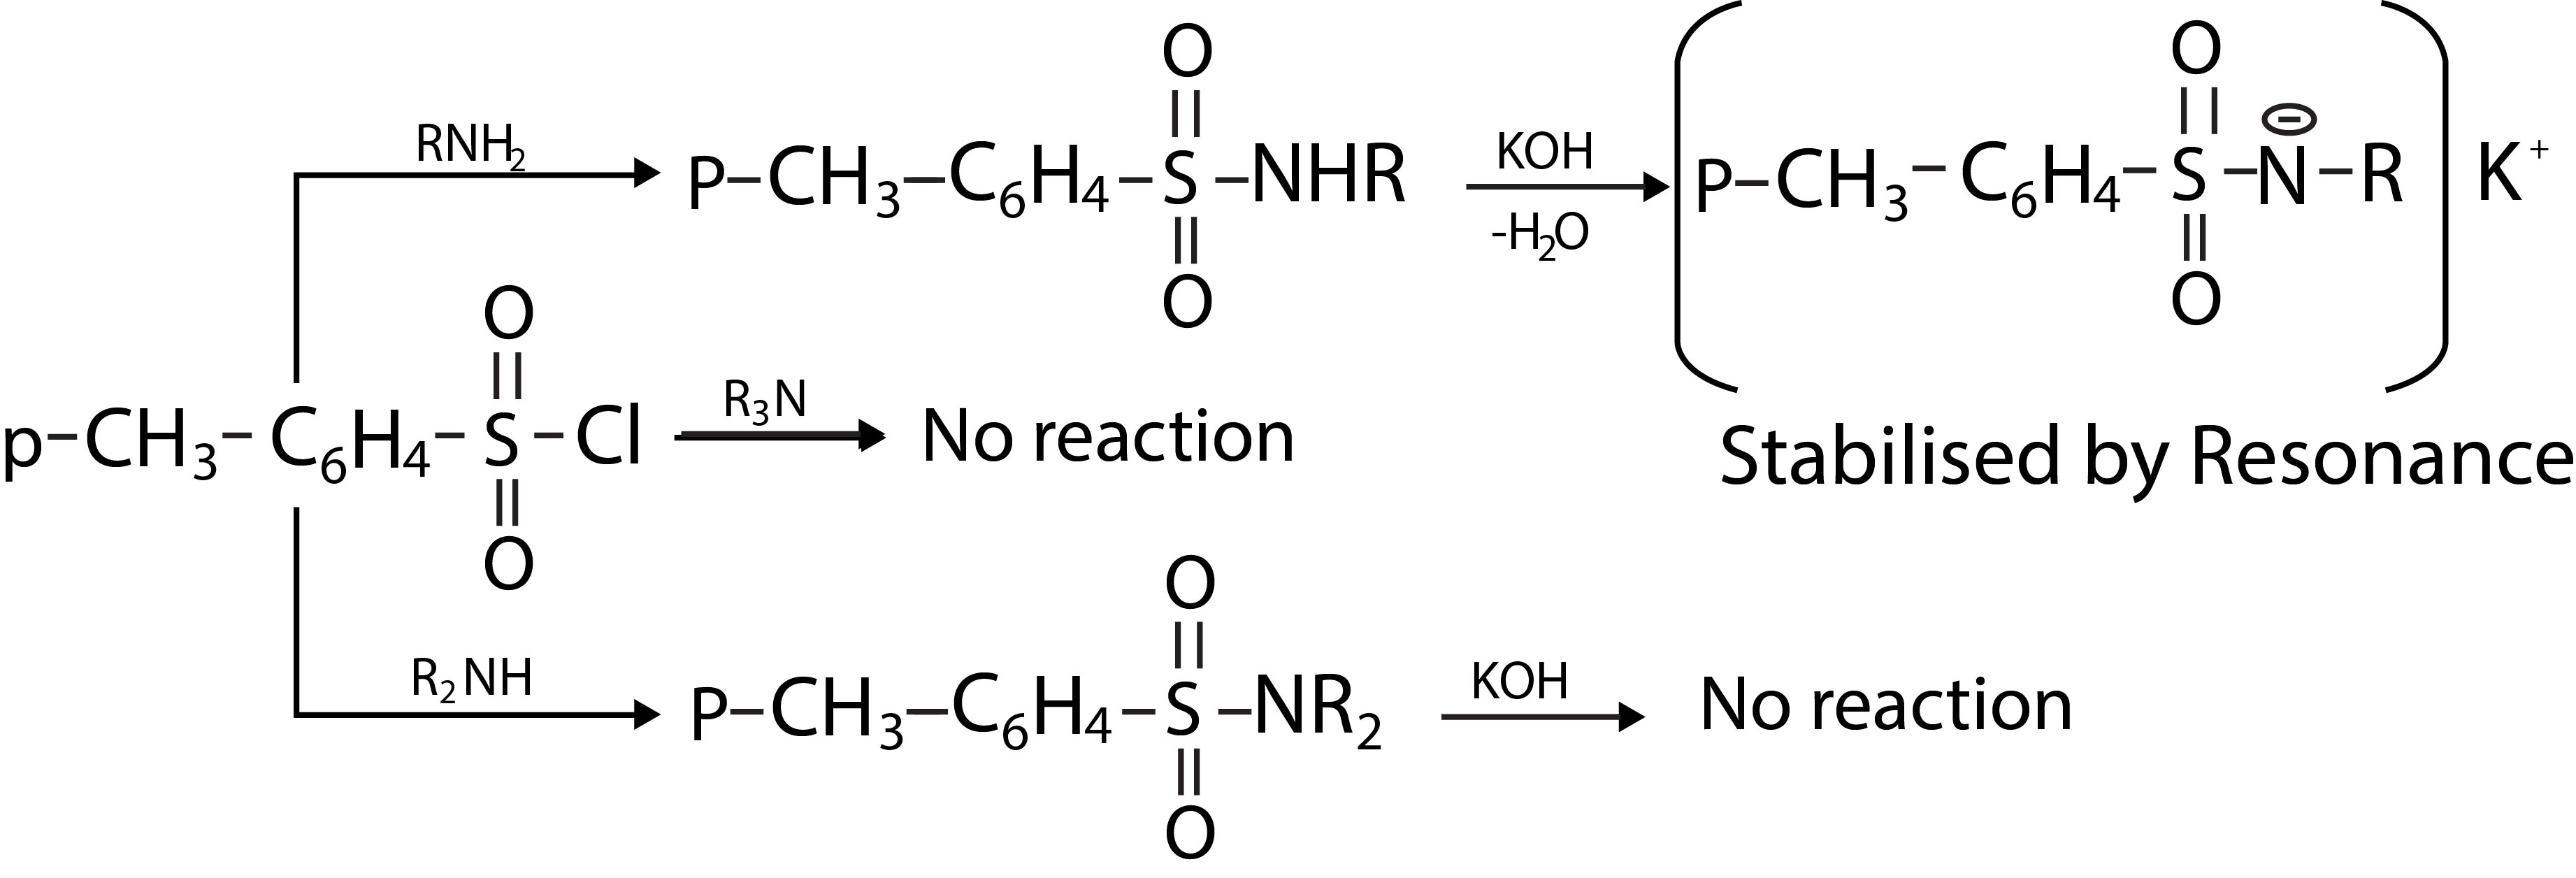 Chemistry CHEMICAL REACTIONS OF AMINES